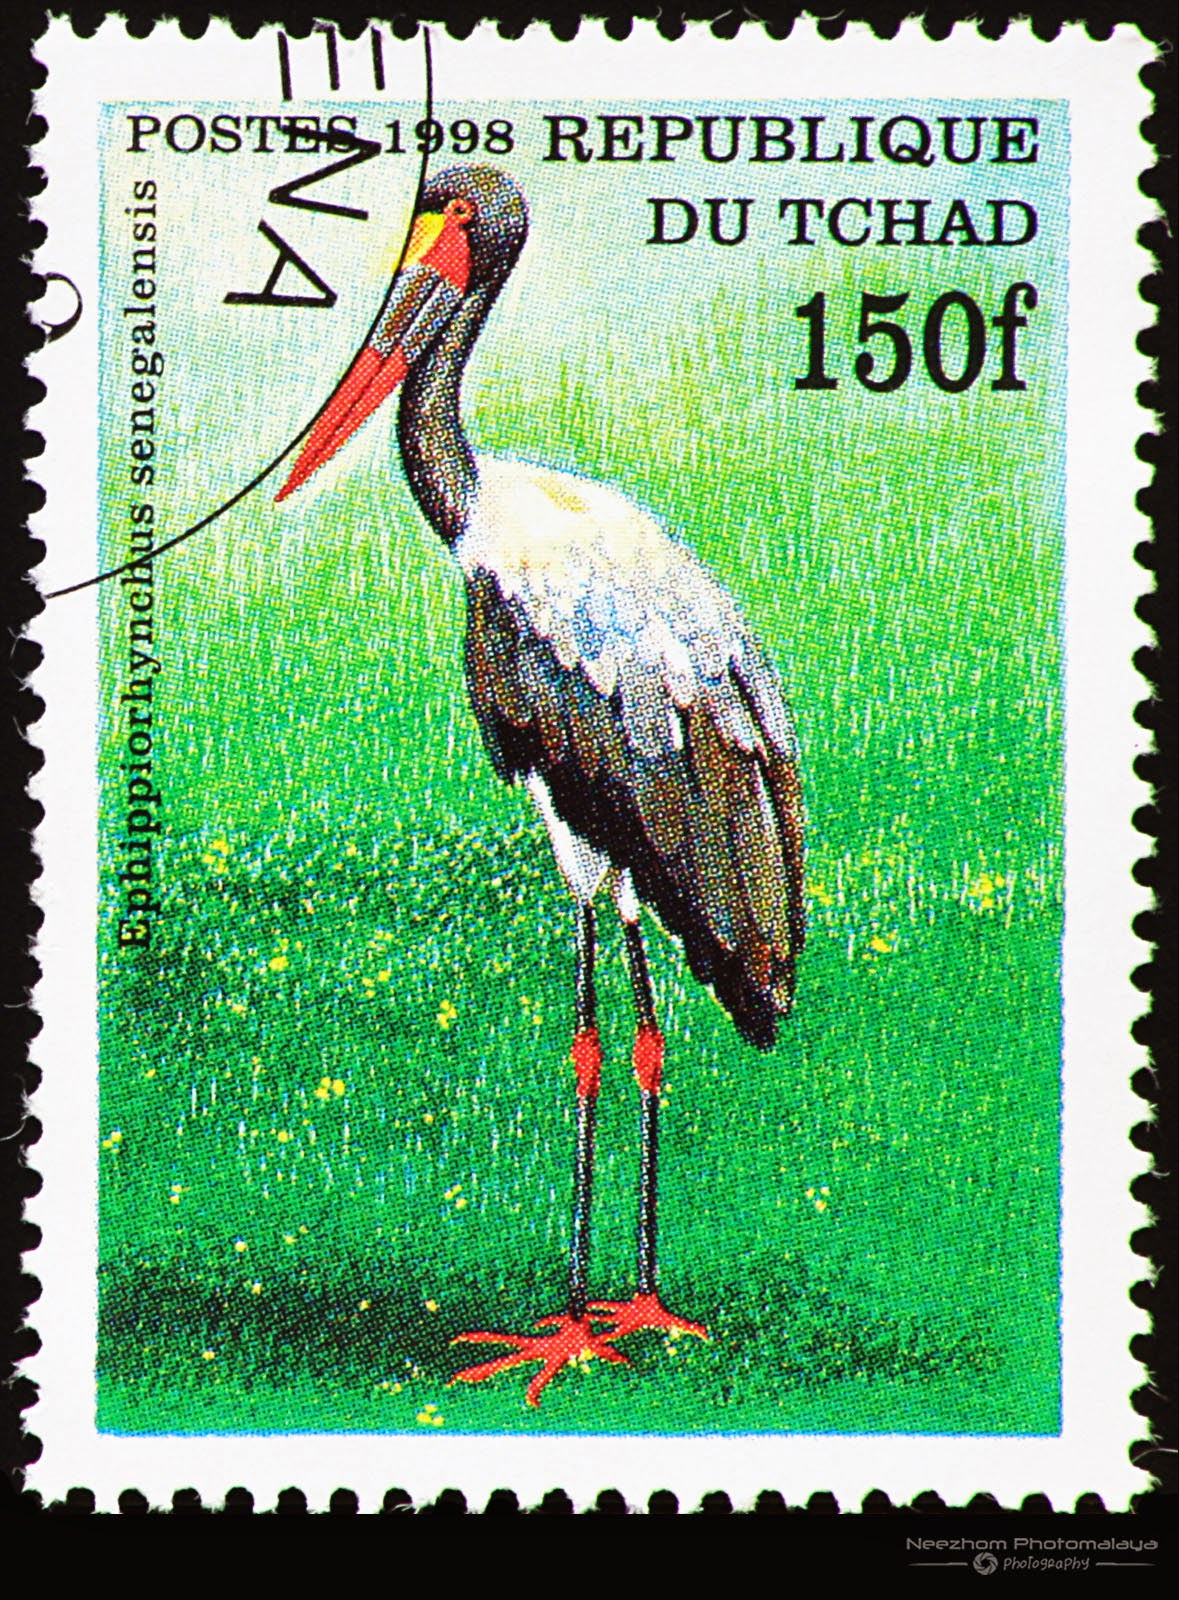 Chad 1998 Birds stamp - Saddle-billed Stork (Ephippiorhynchus senegalensis) 150 f